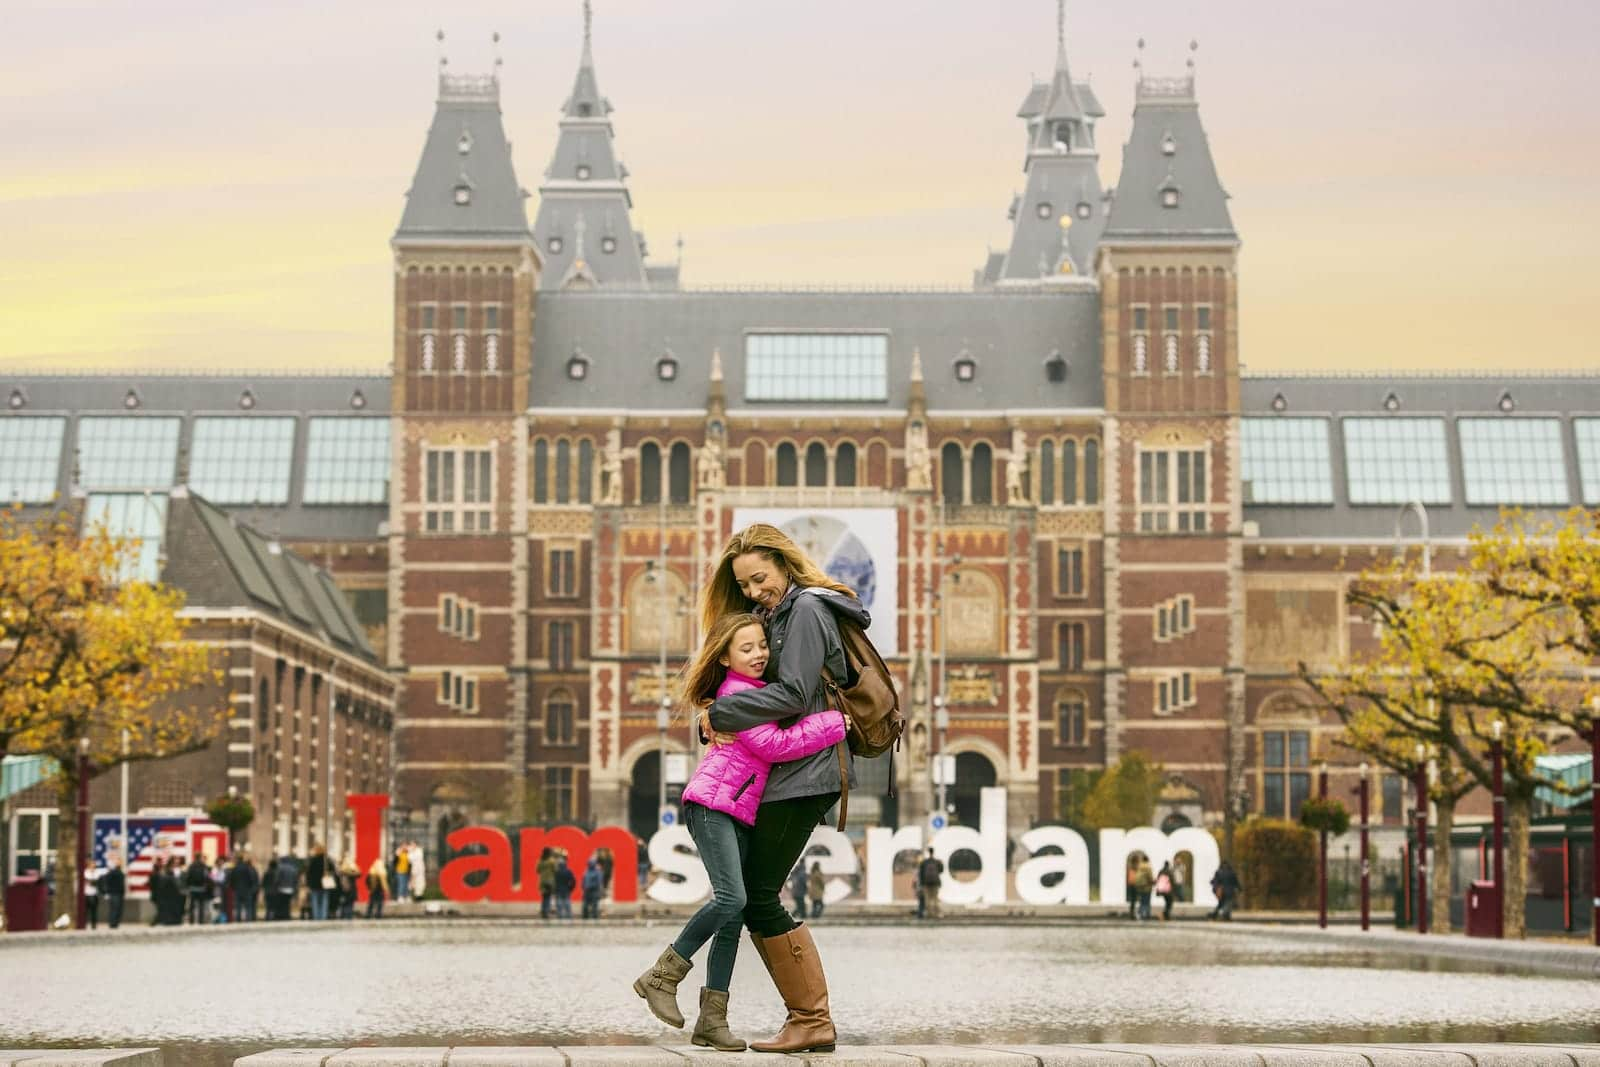 Luxury Family Vacation With Kids Holland Mom Hugging Daughter With I Am Amsterdam Background